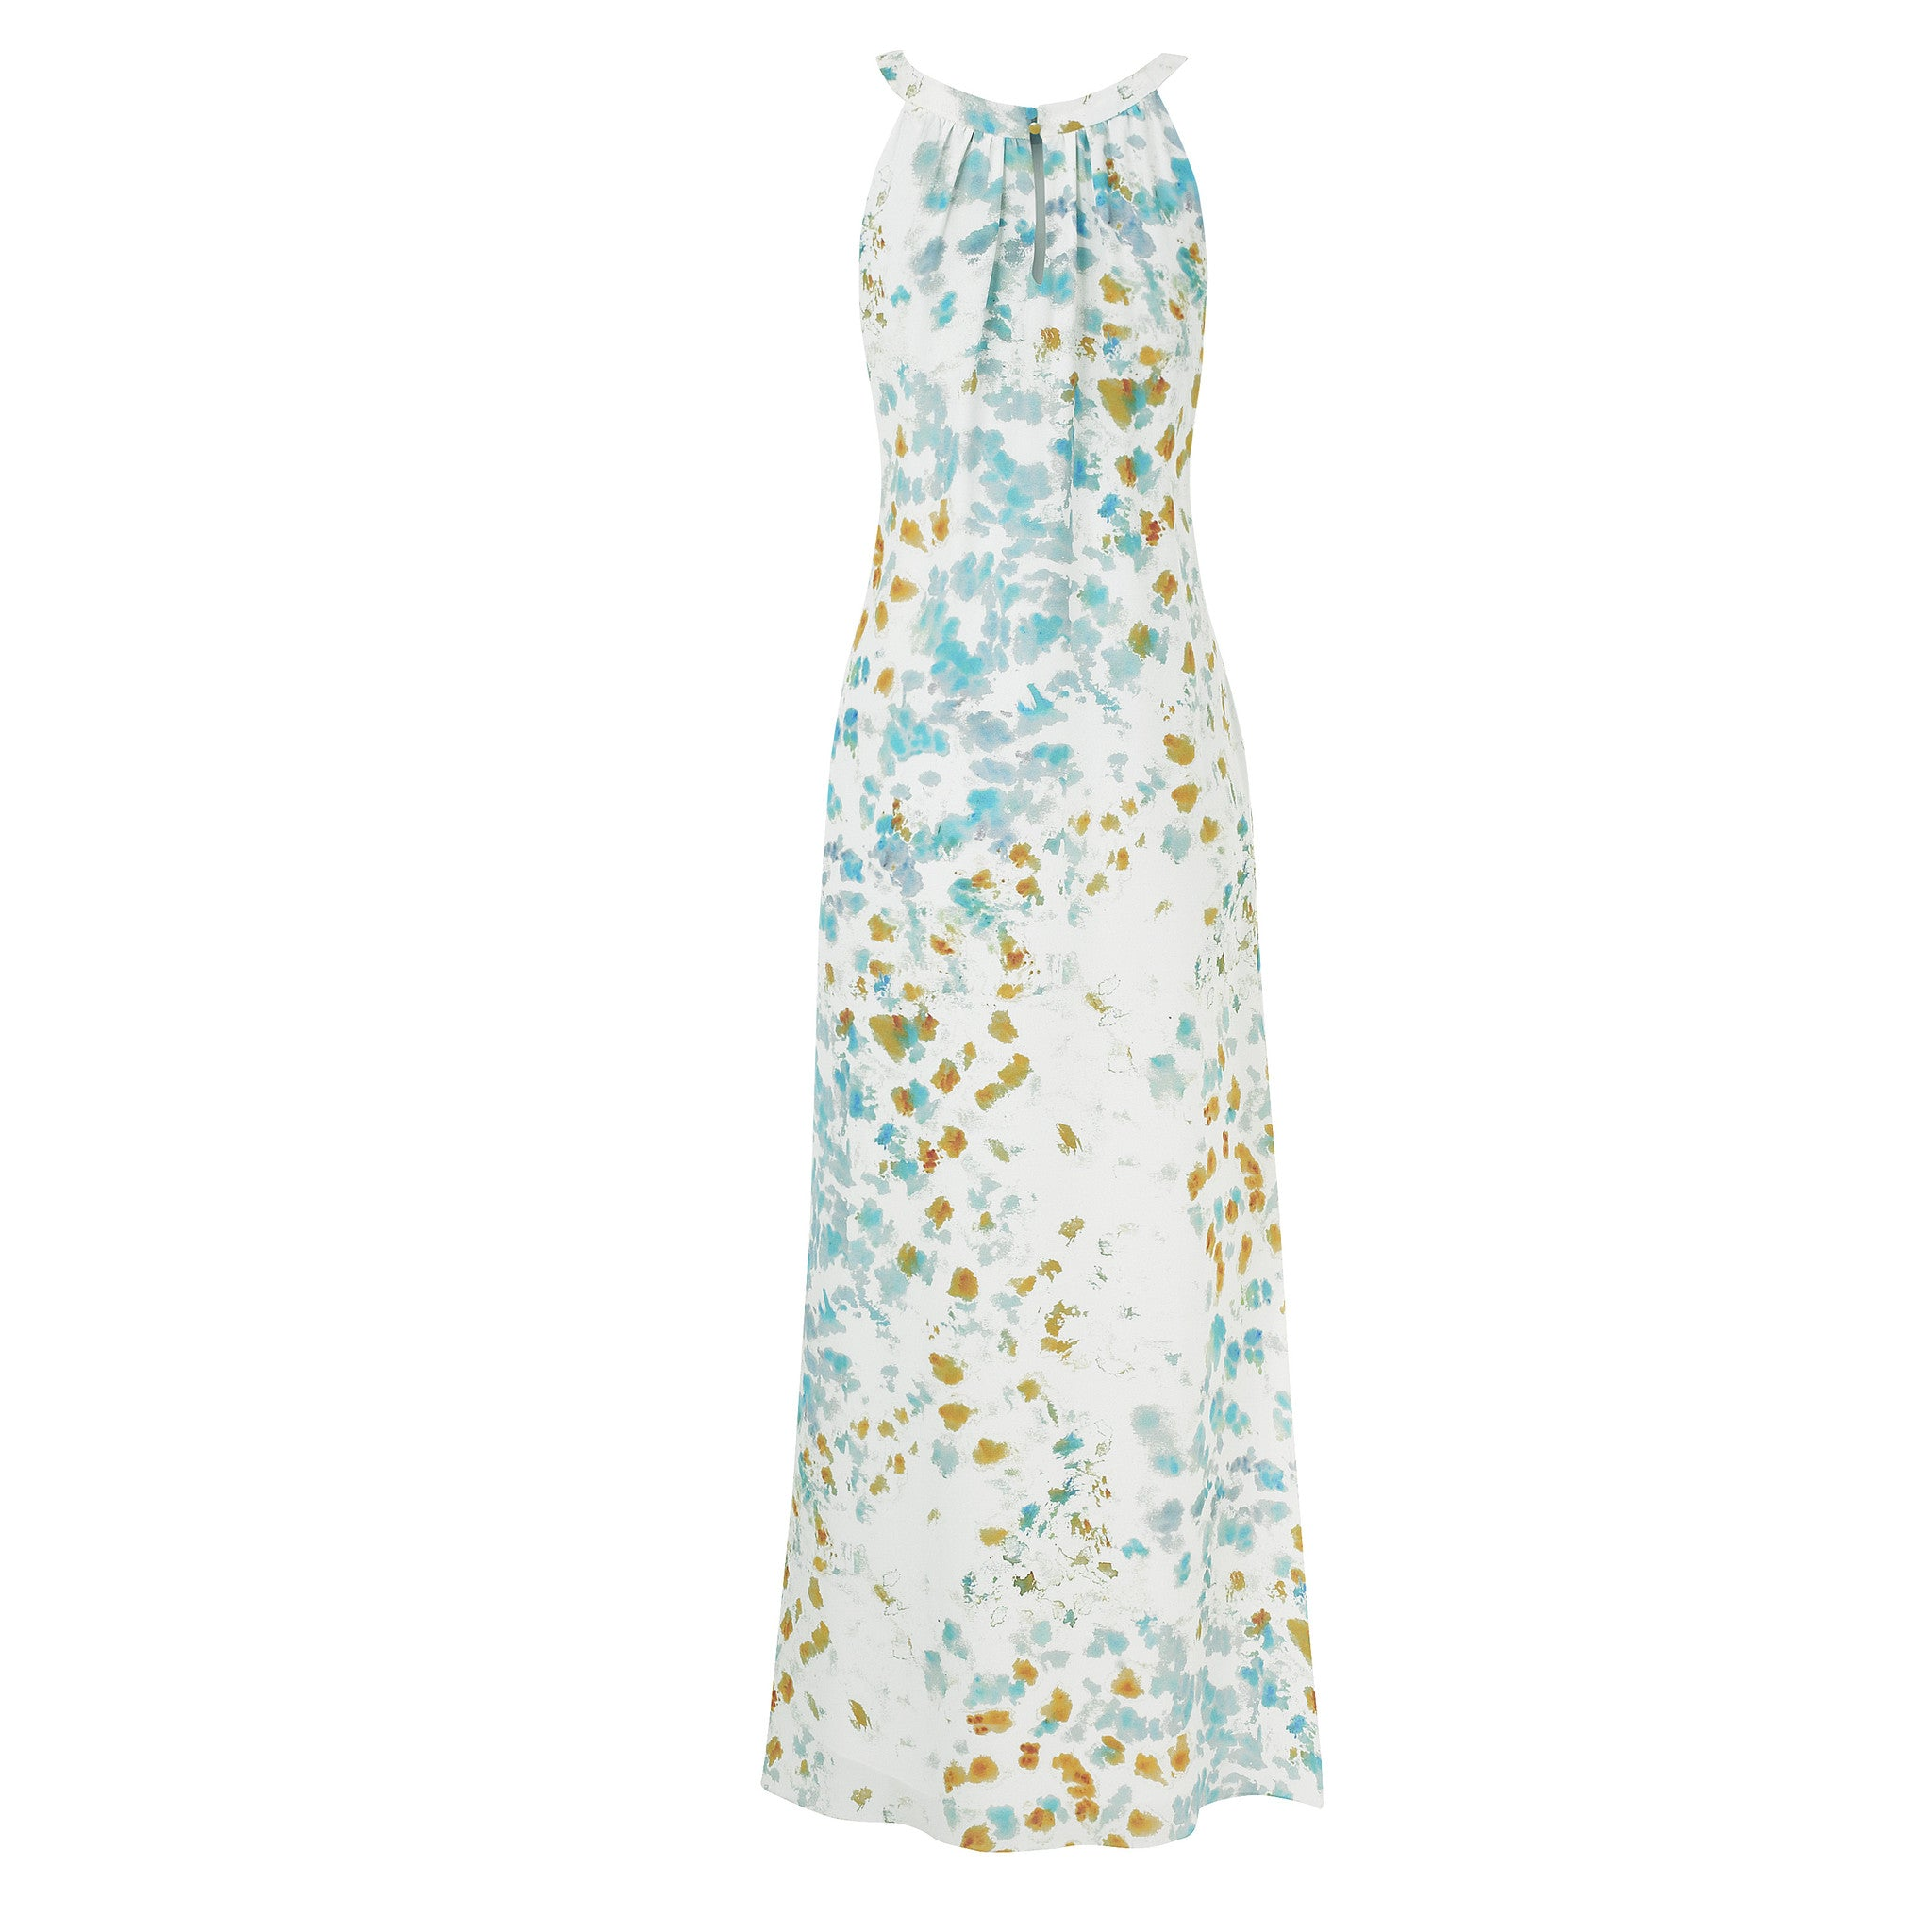 Jemima Maxi Dress - Turquoise and Orange Ink